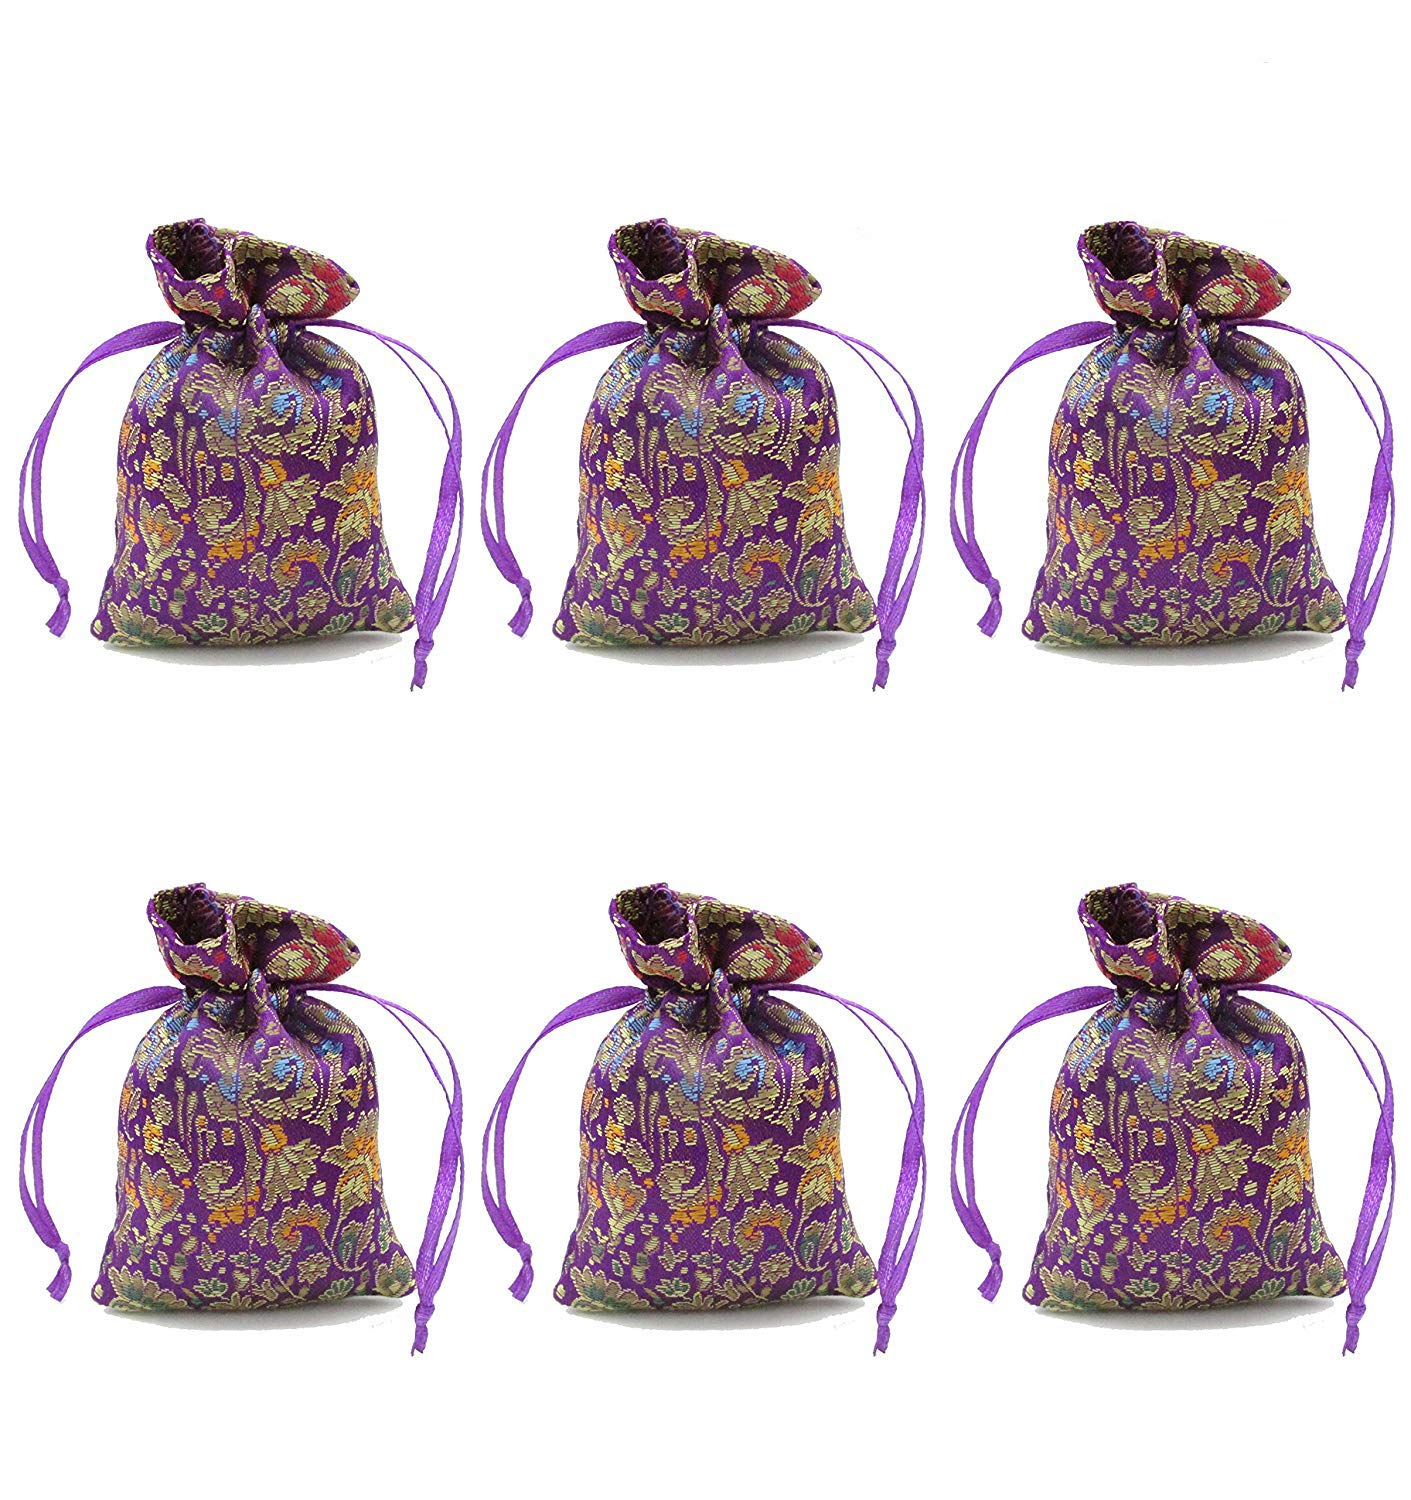 Anianiau Lavender Scented Sachets - Effectively repel insects and moths Purifies bad odour 6 Pack